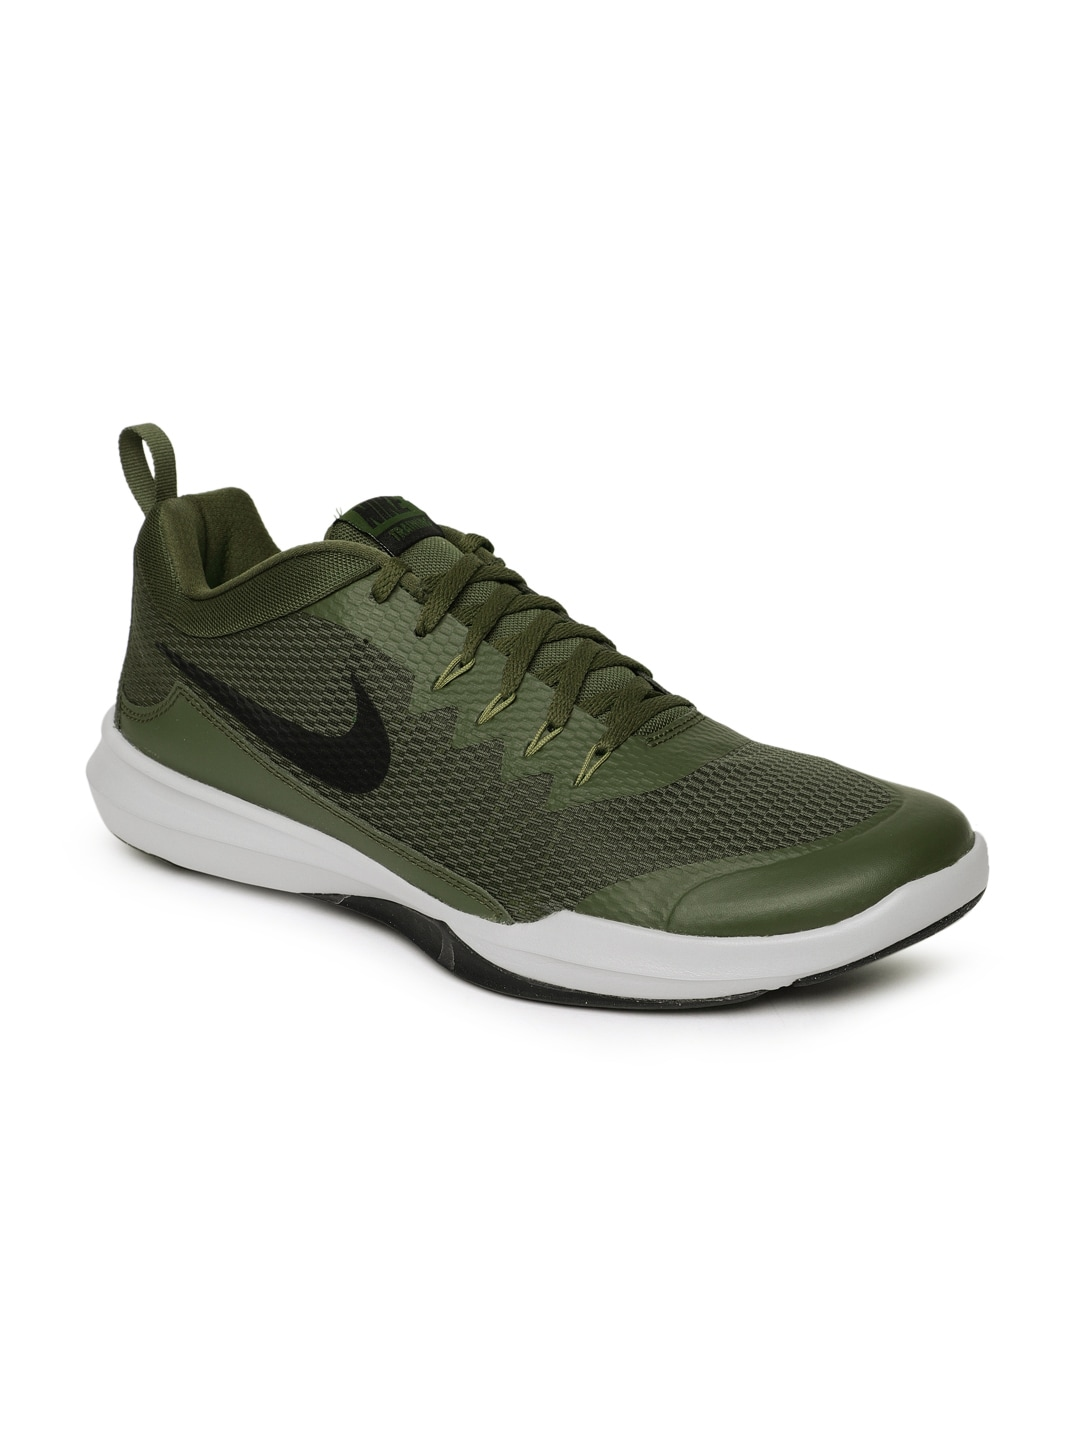 90ebeeaf0 Nike Shoes - Buy Nike Shoes for Men